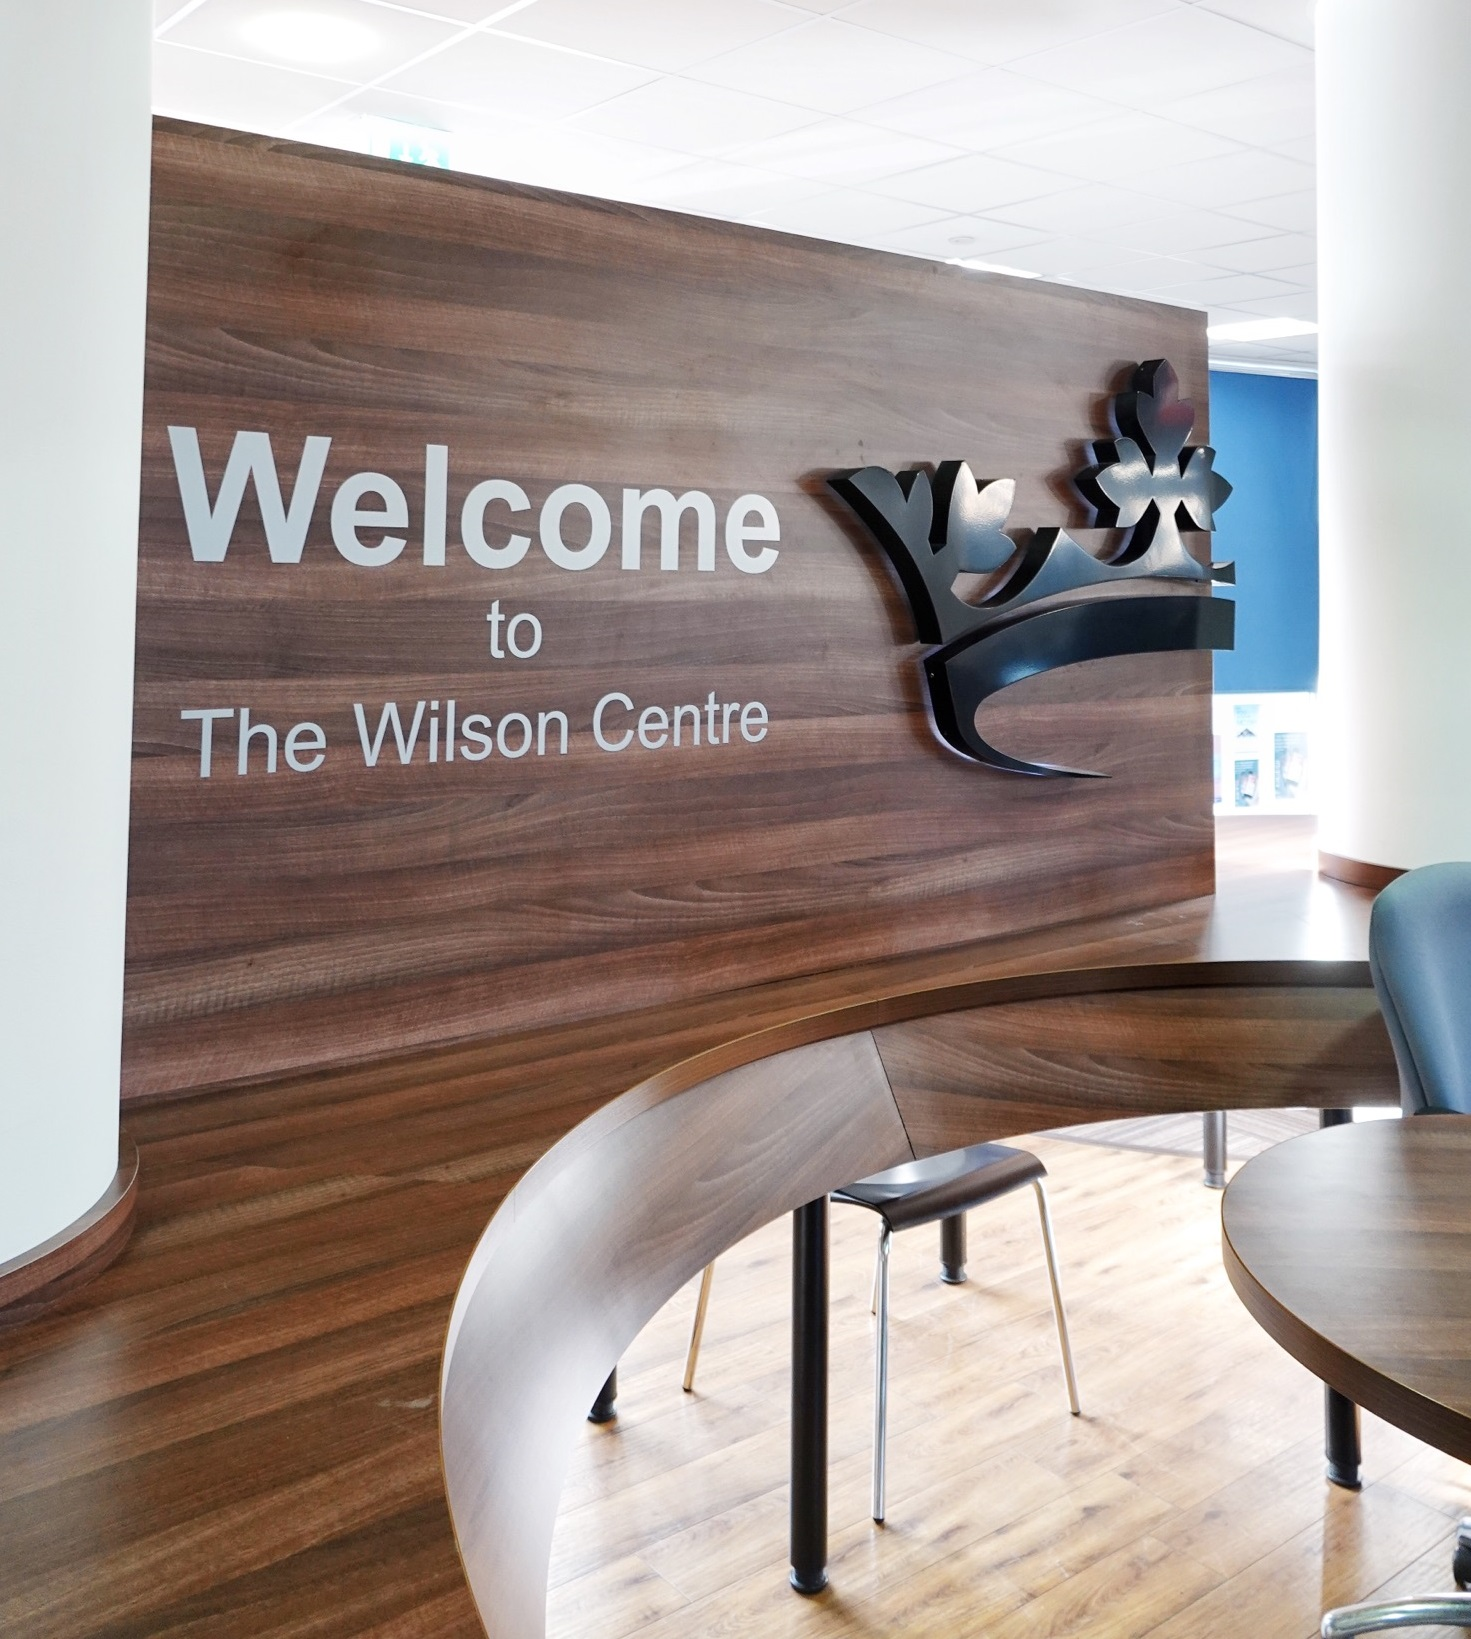 The Wilson Centre interior has been refurbished.